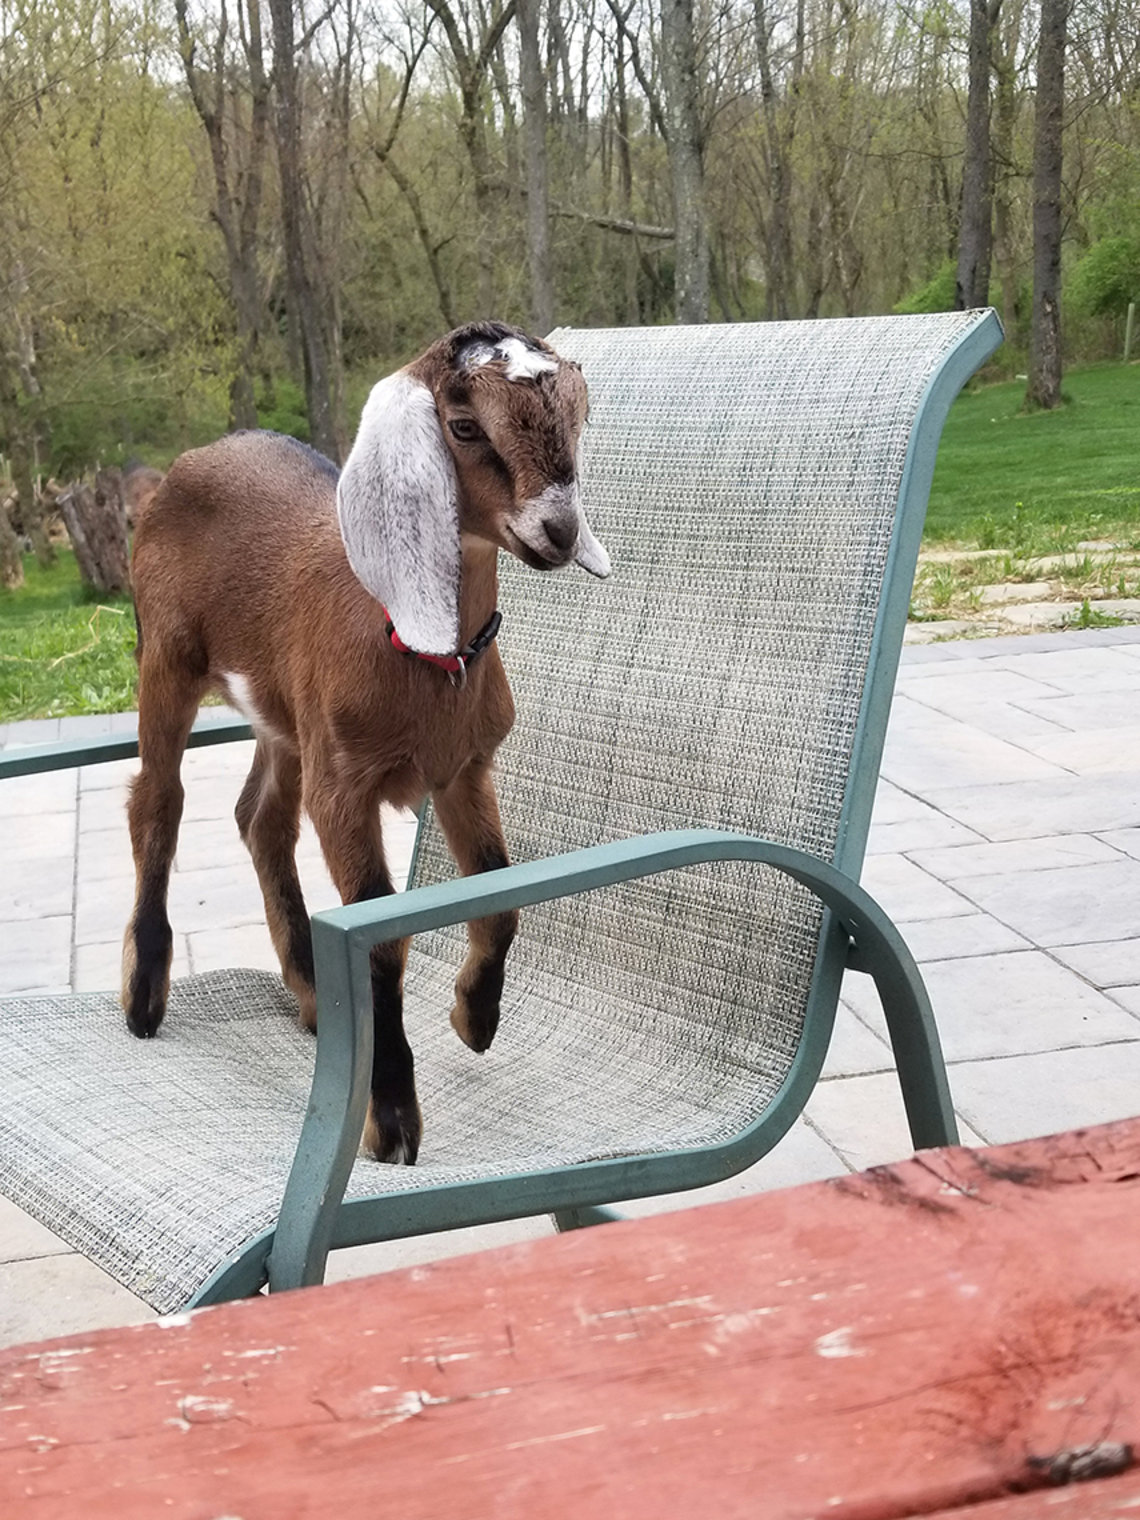 Goat stands on patio chair